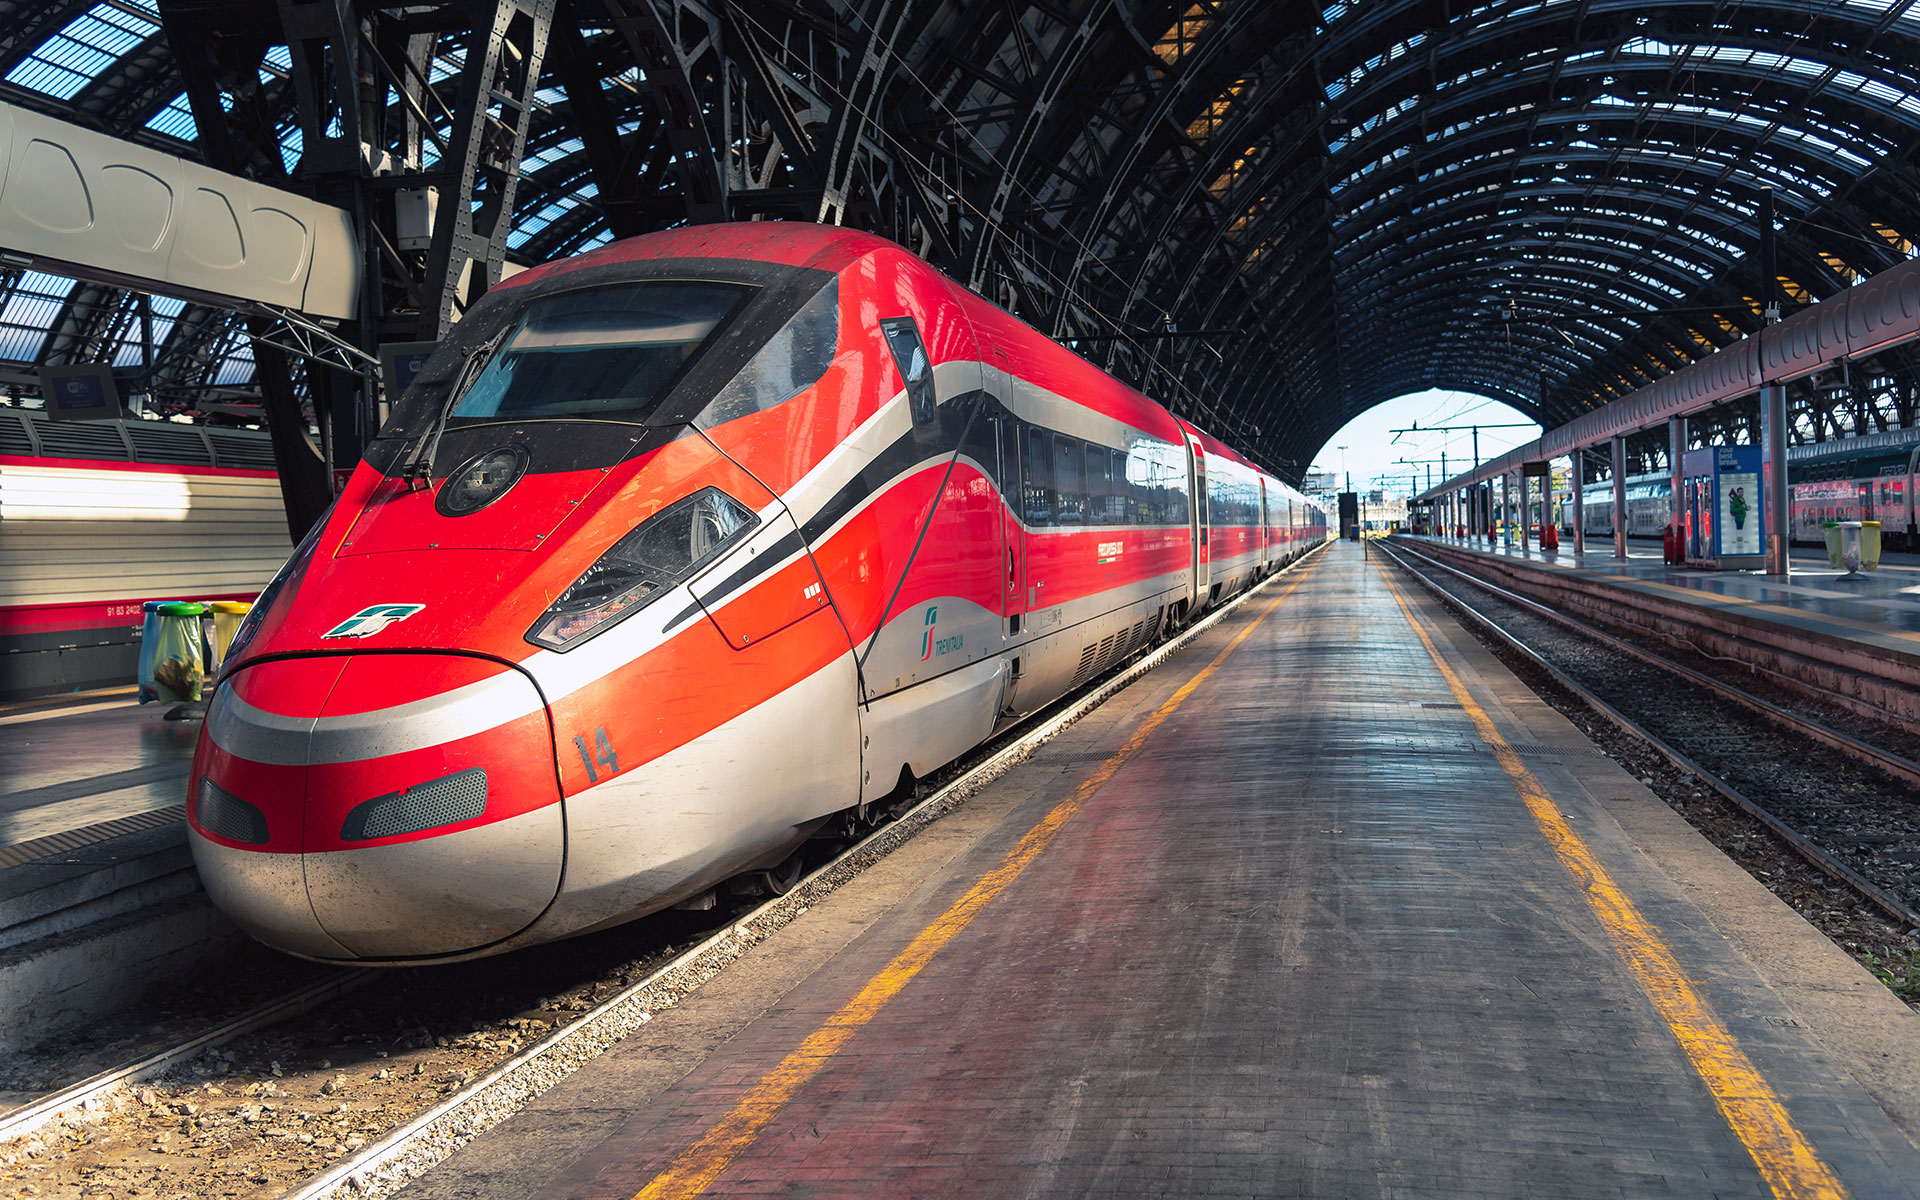 Trenitalia is increasingly using its sleek Frecciarossa trains to destinations well removed from the high-speed network (photo © Petru Stan / dreamstime.com).